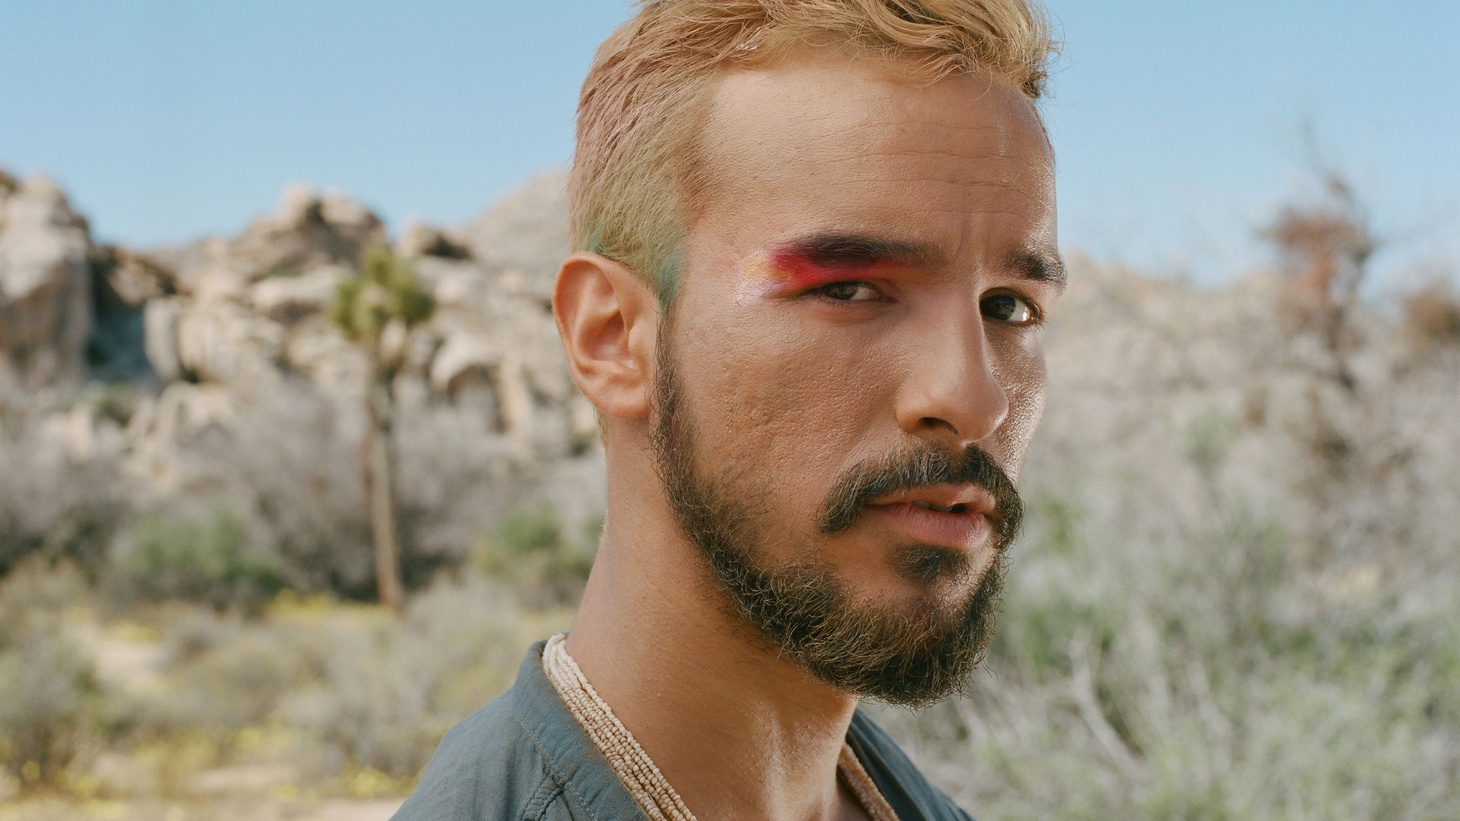 """Speaking of """"The Game,"""" Brooklyn-born singer-songwriter and multi-instrumentalist Gabriel Garzón-Montano says, """"We all play the game. We can make the best of it and we can make the worst of it. I wrote this as a reminder not to take myself so seriously."""""""